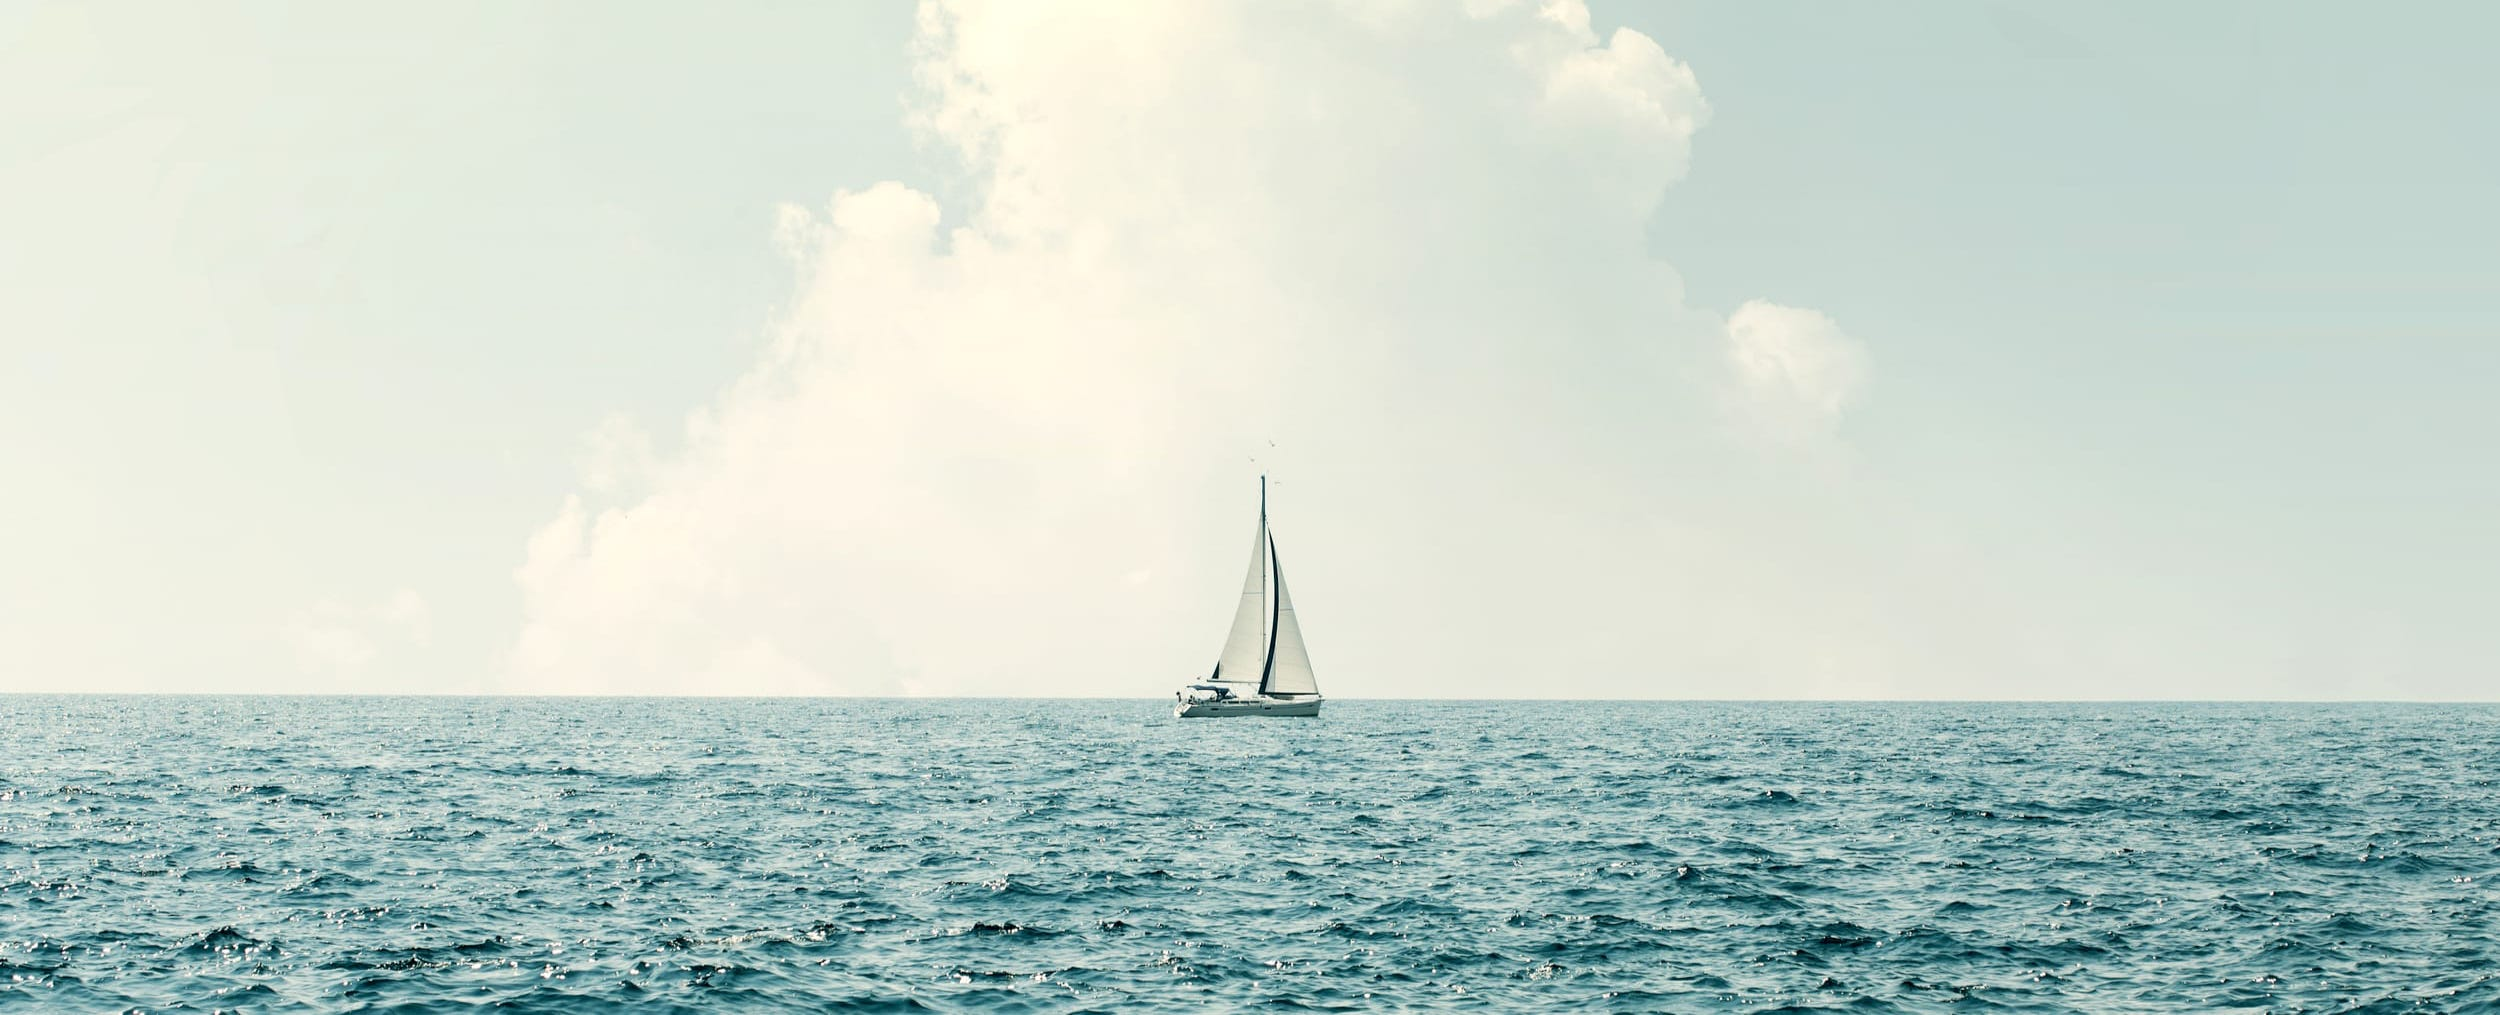 sailboat-calm-sea-minimalism-crop